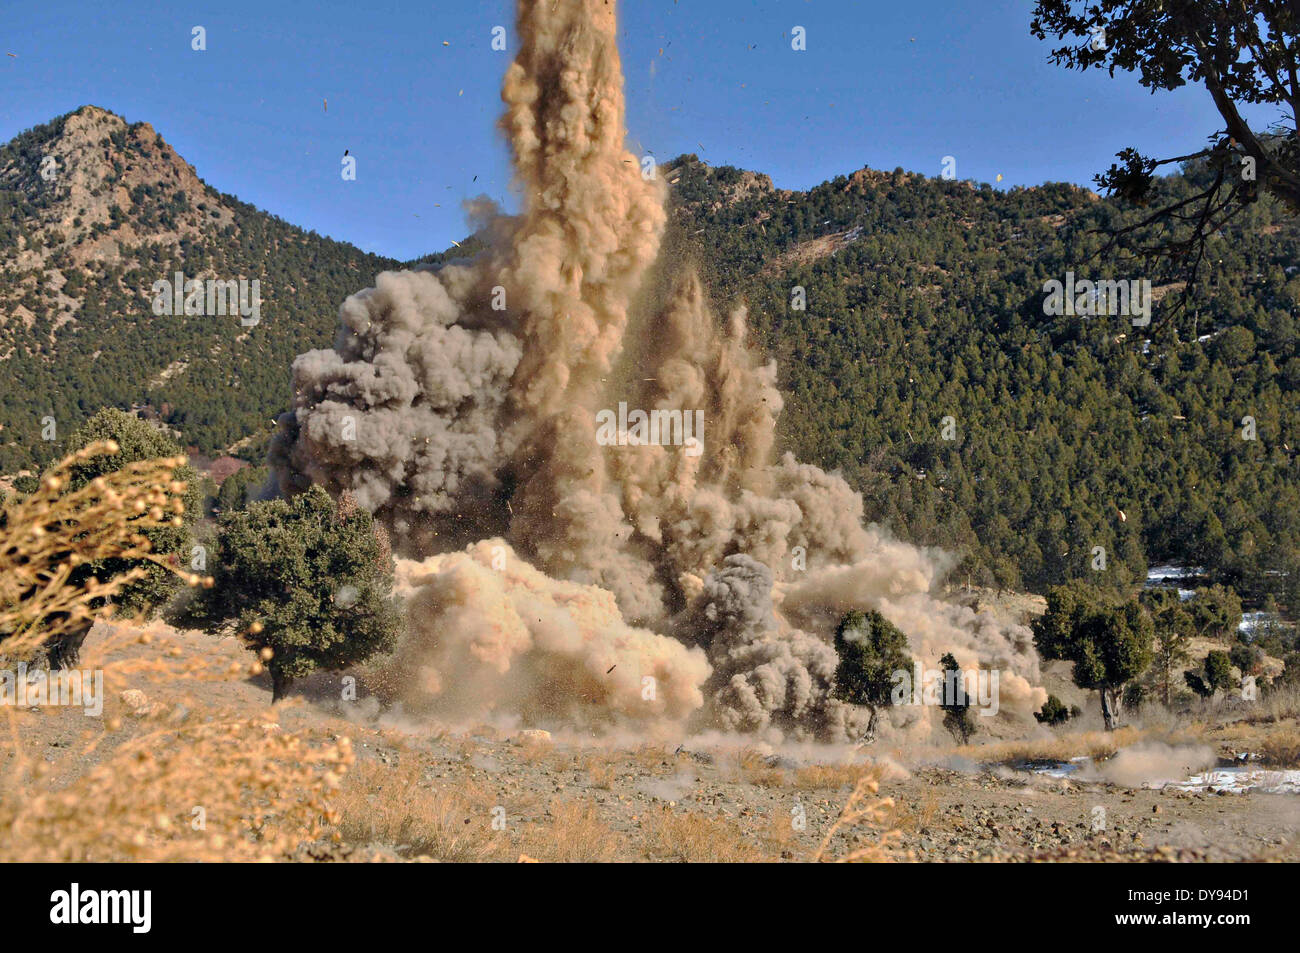 A former Taliban safe house explodes after US Army soldiers placed C-4 explosive charges inside a wall to destroy the building once used by insurgent fighters December 18, 2009 in Khost province, Afghanistan. - Stock Image